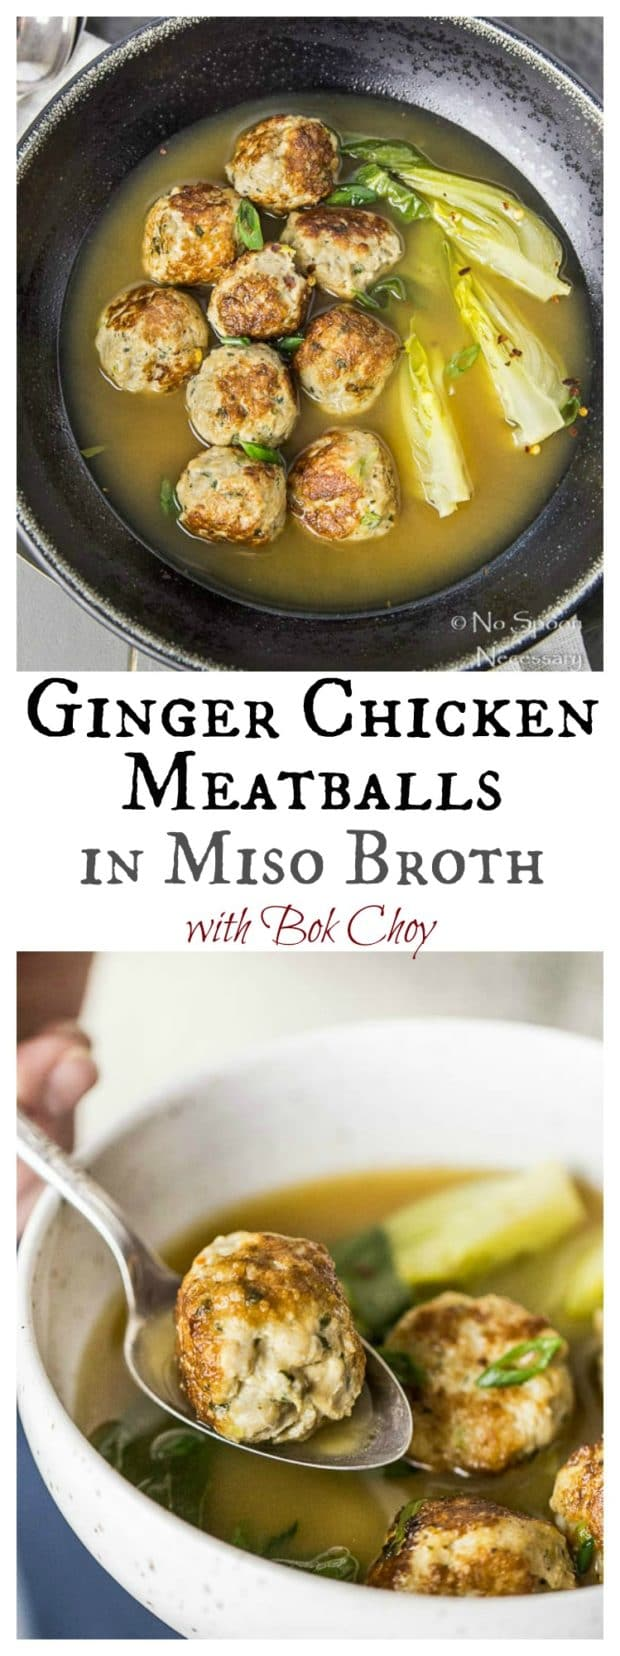 Ginger Chicken Meatballs with Bok Choy in Miso Broth- long pin2